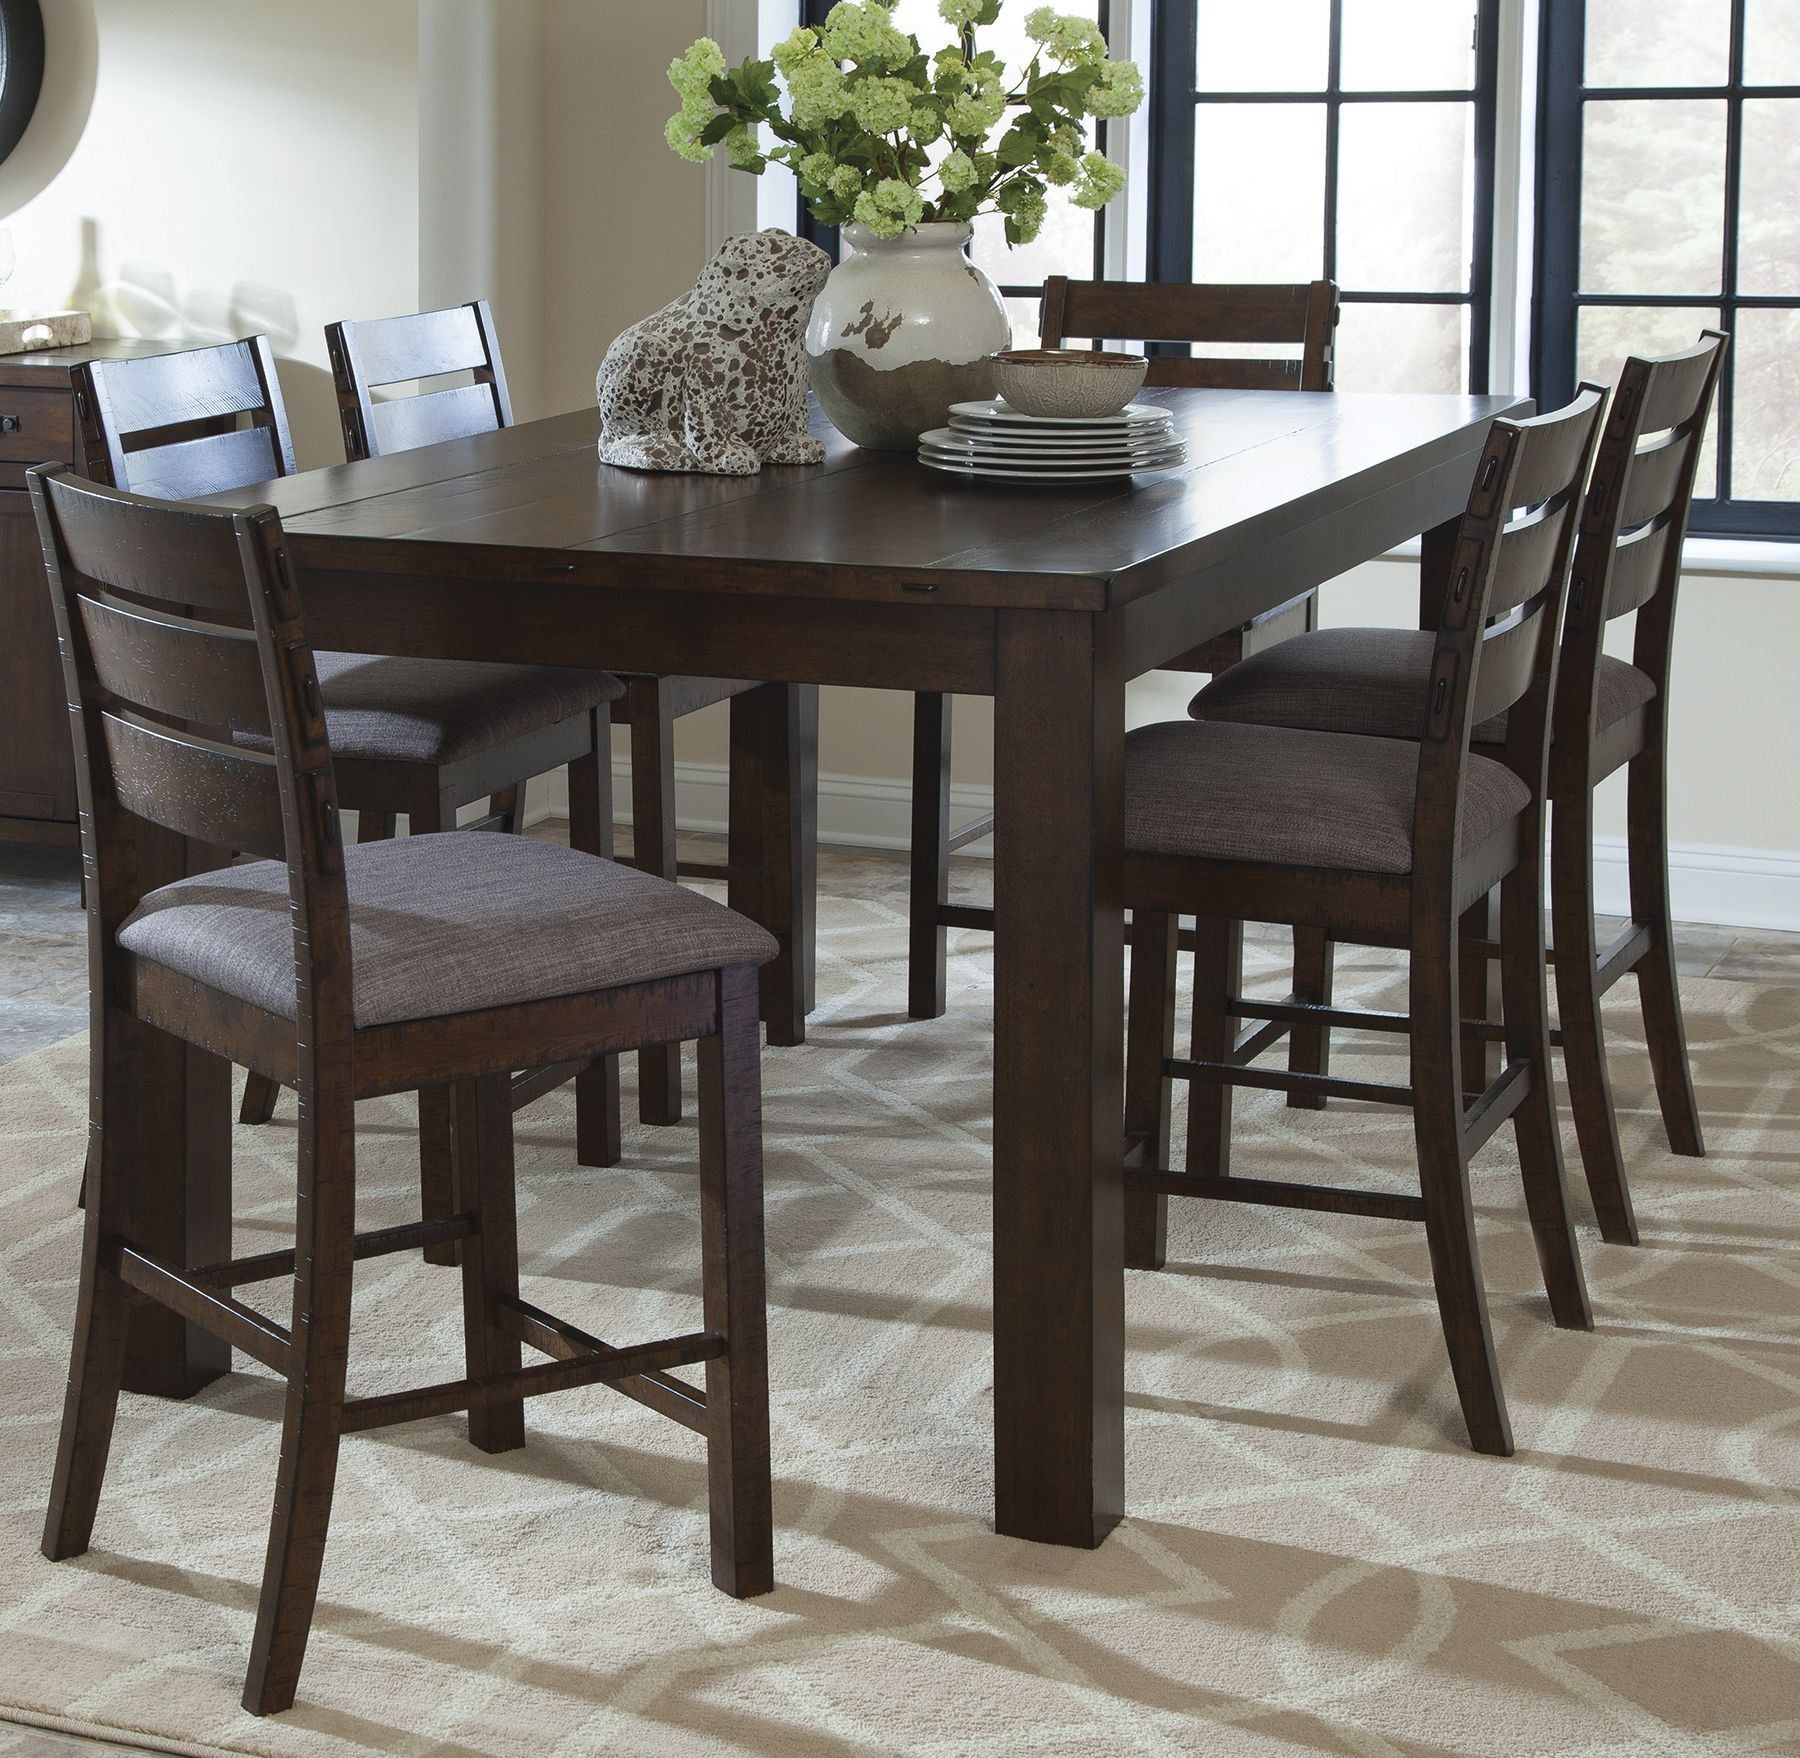 Wilshire Rustic Pecan Counter Height Dining Room Set 106368 Coaster Furniture